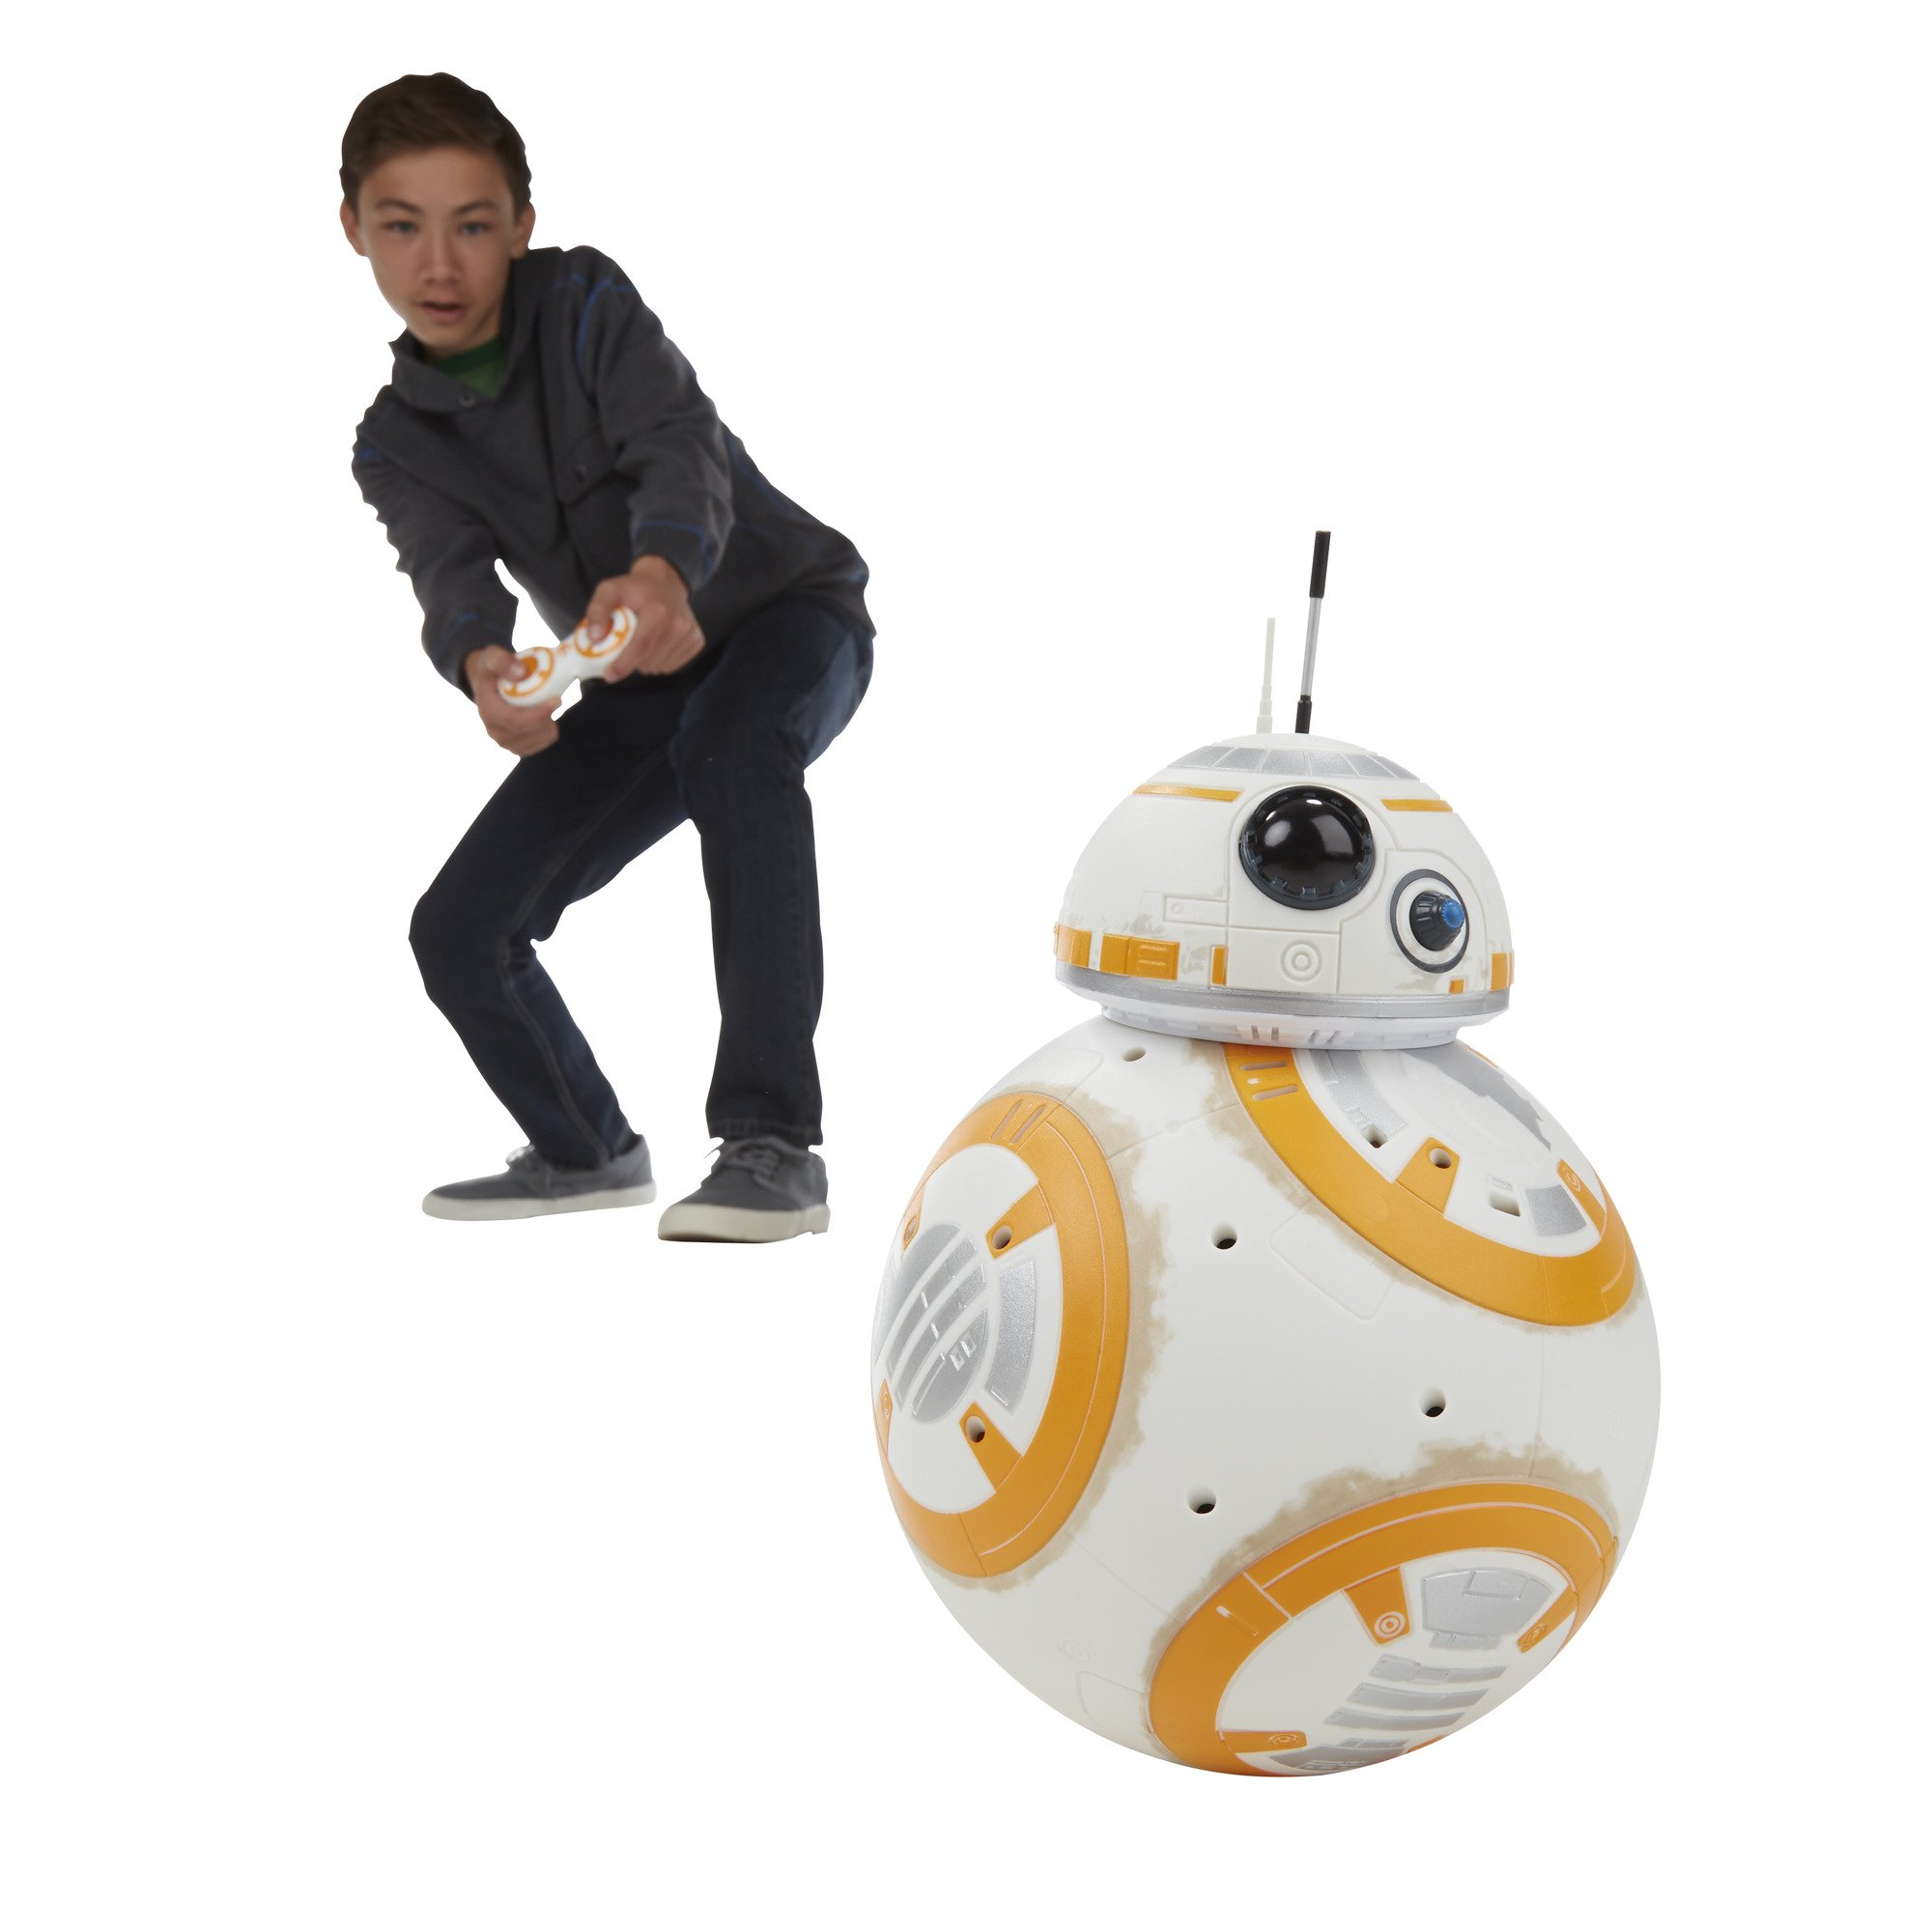 Star Wars The Force Awakens RC BB-8 by Star Wars (Image #11)